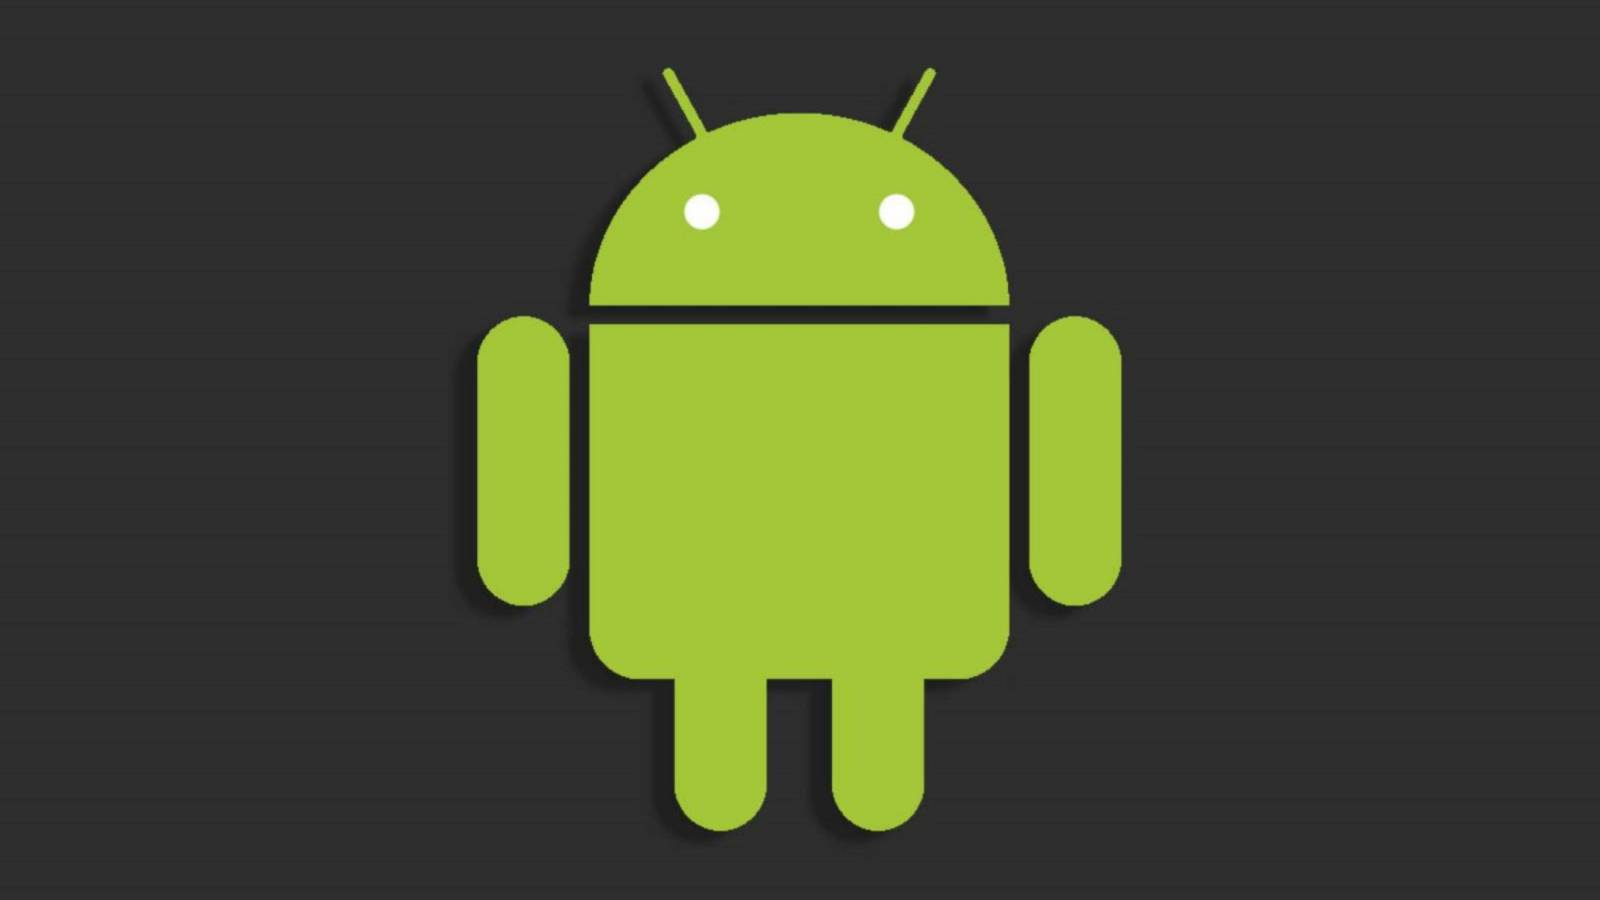 Android: Radical change induced by Google and Apple